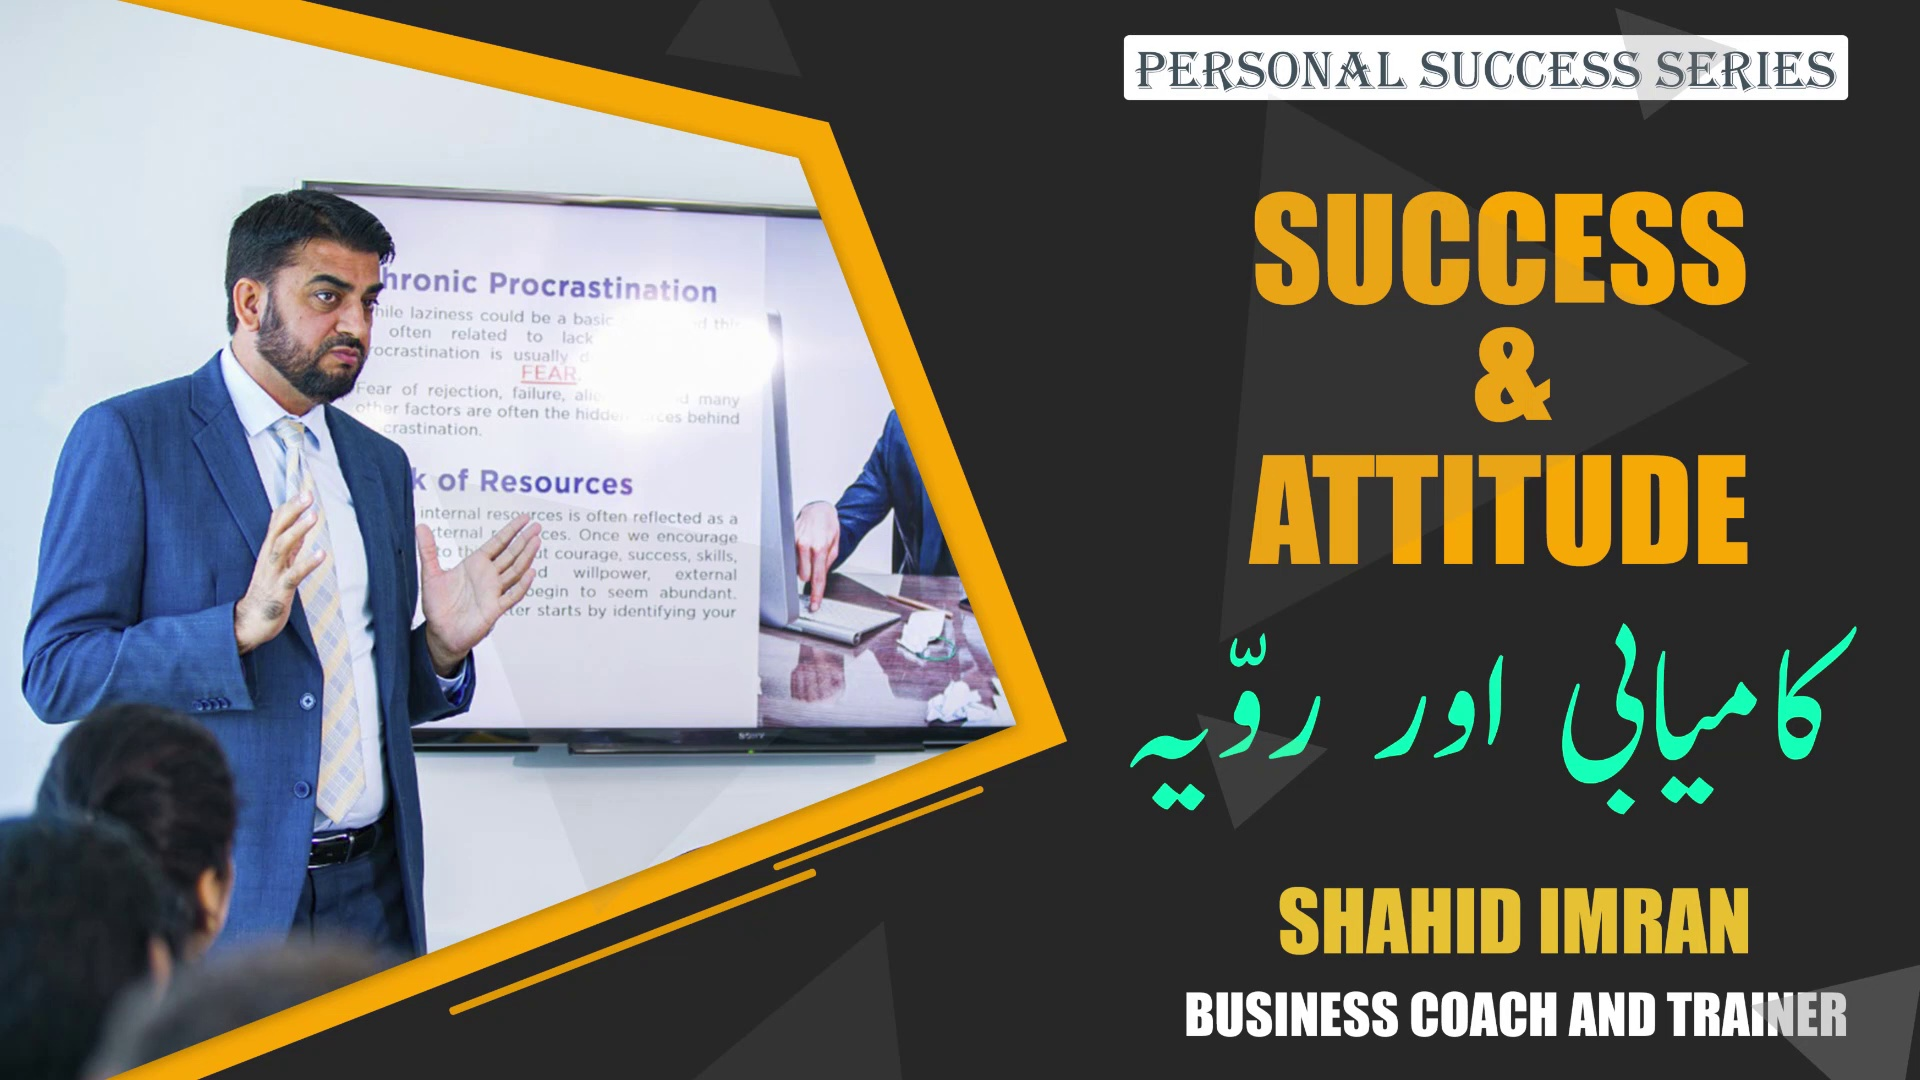 Success & ATTITUDE || Shahid Imran Business Coach and Trainer || Reader Leader